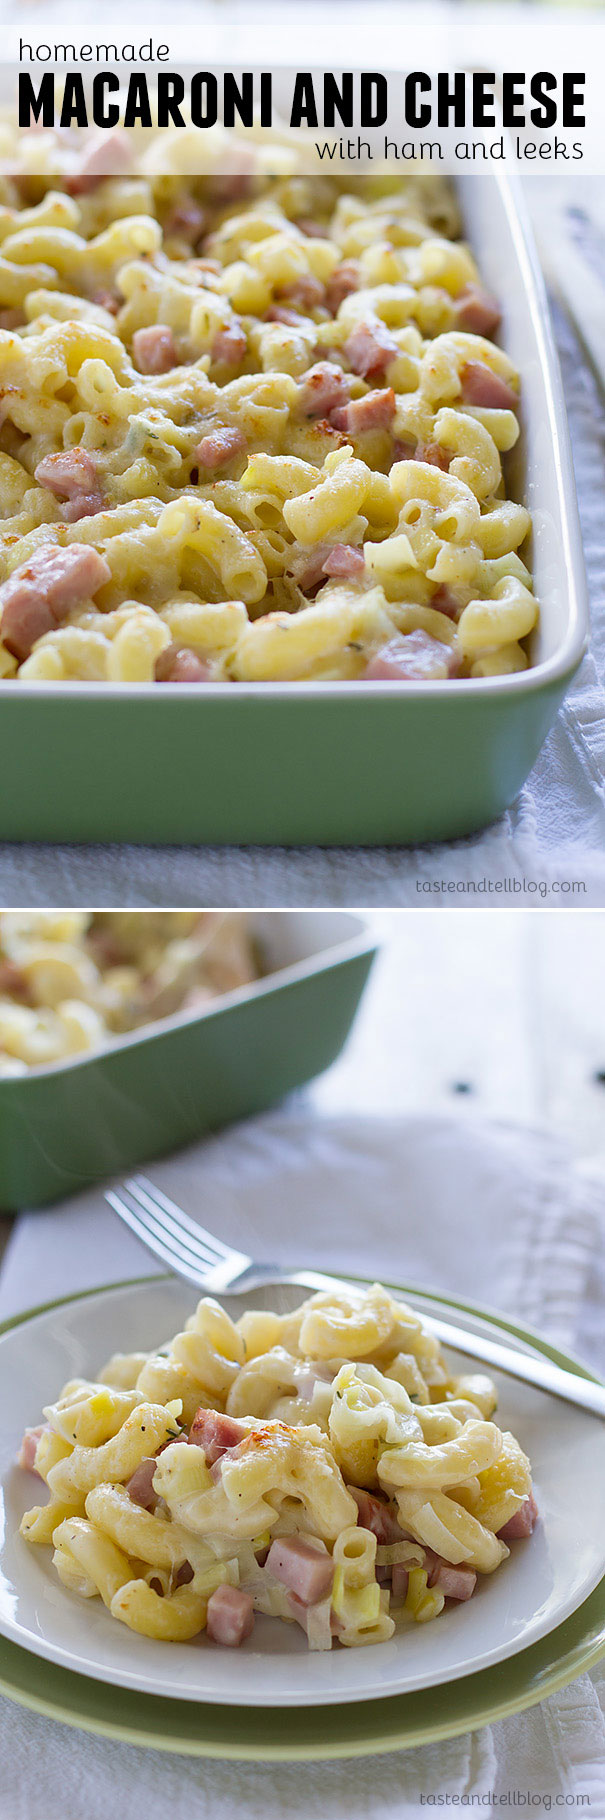 Creamy homemade macaroni and cheese is made with gruyere cheese and filled with leeks and ham for an irresistible version of macaroni and cheese that the whole family will love.